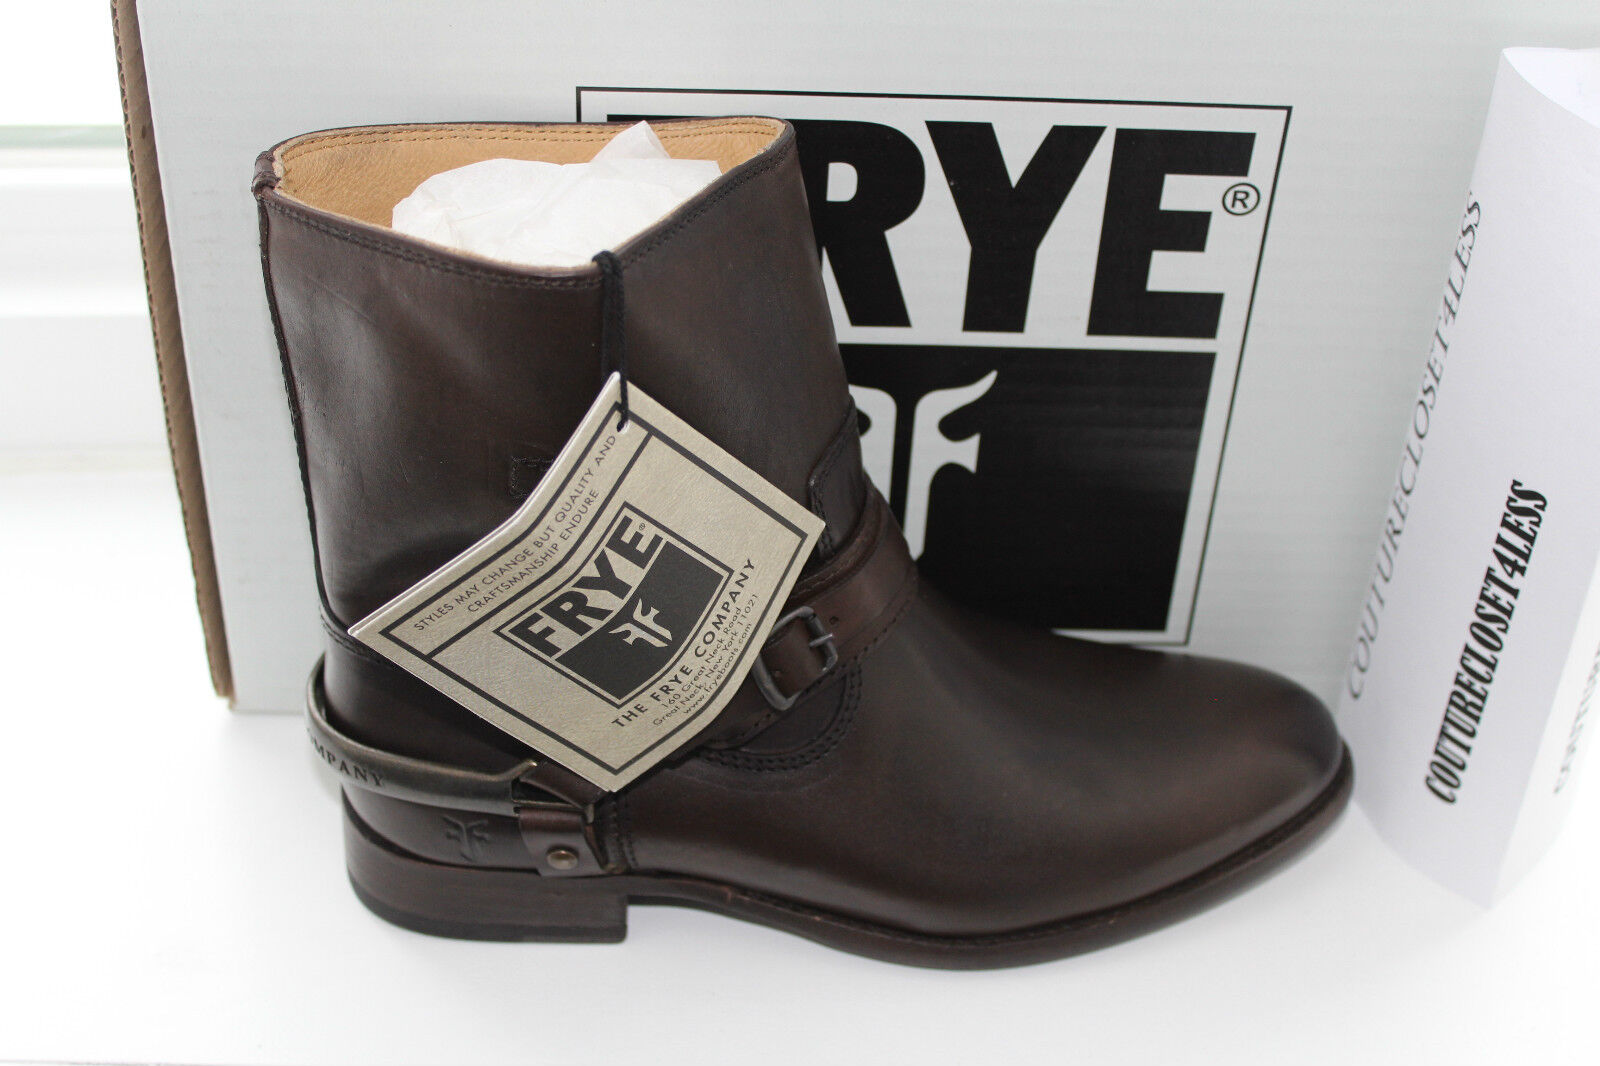 FRYE LINDSAY SPUR SHORT DARK marron SMOOTH SMOOTH SMOOTH FULL GRAIN LEATHER  8.5us  339 b2578f